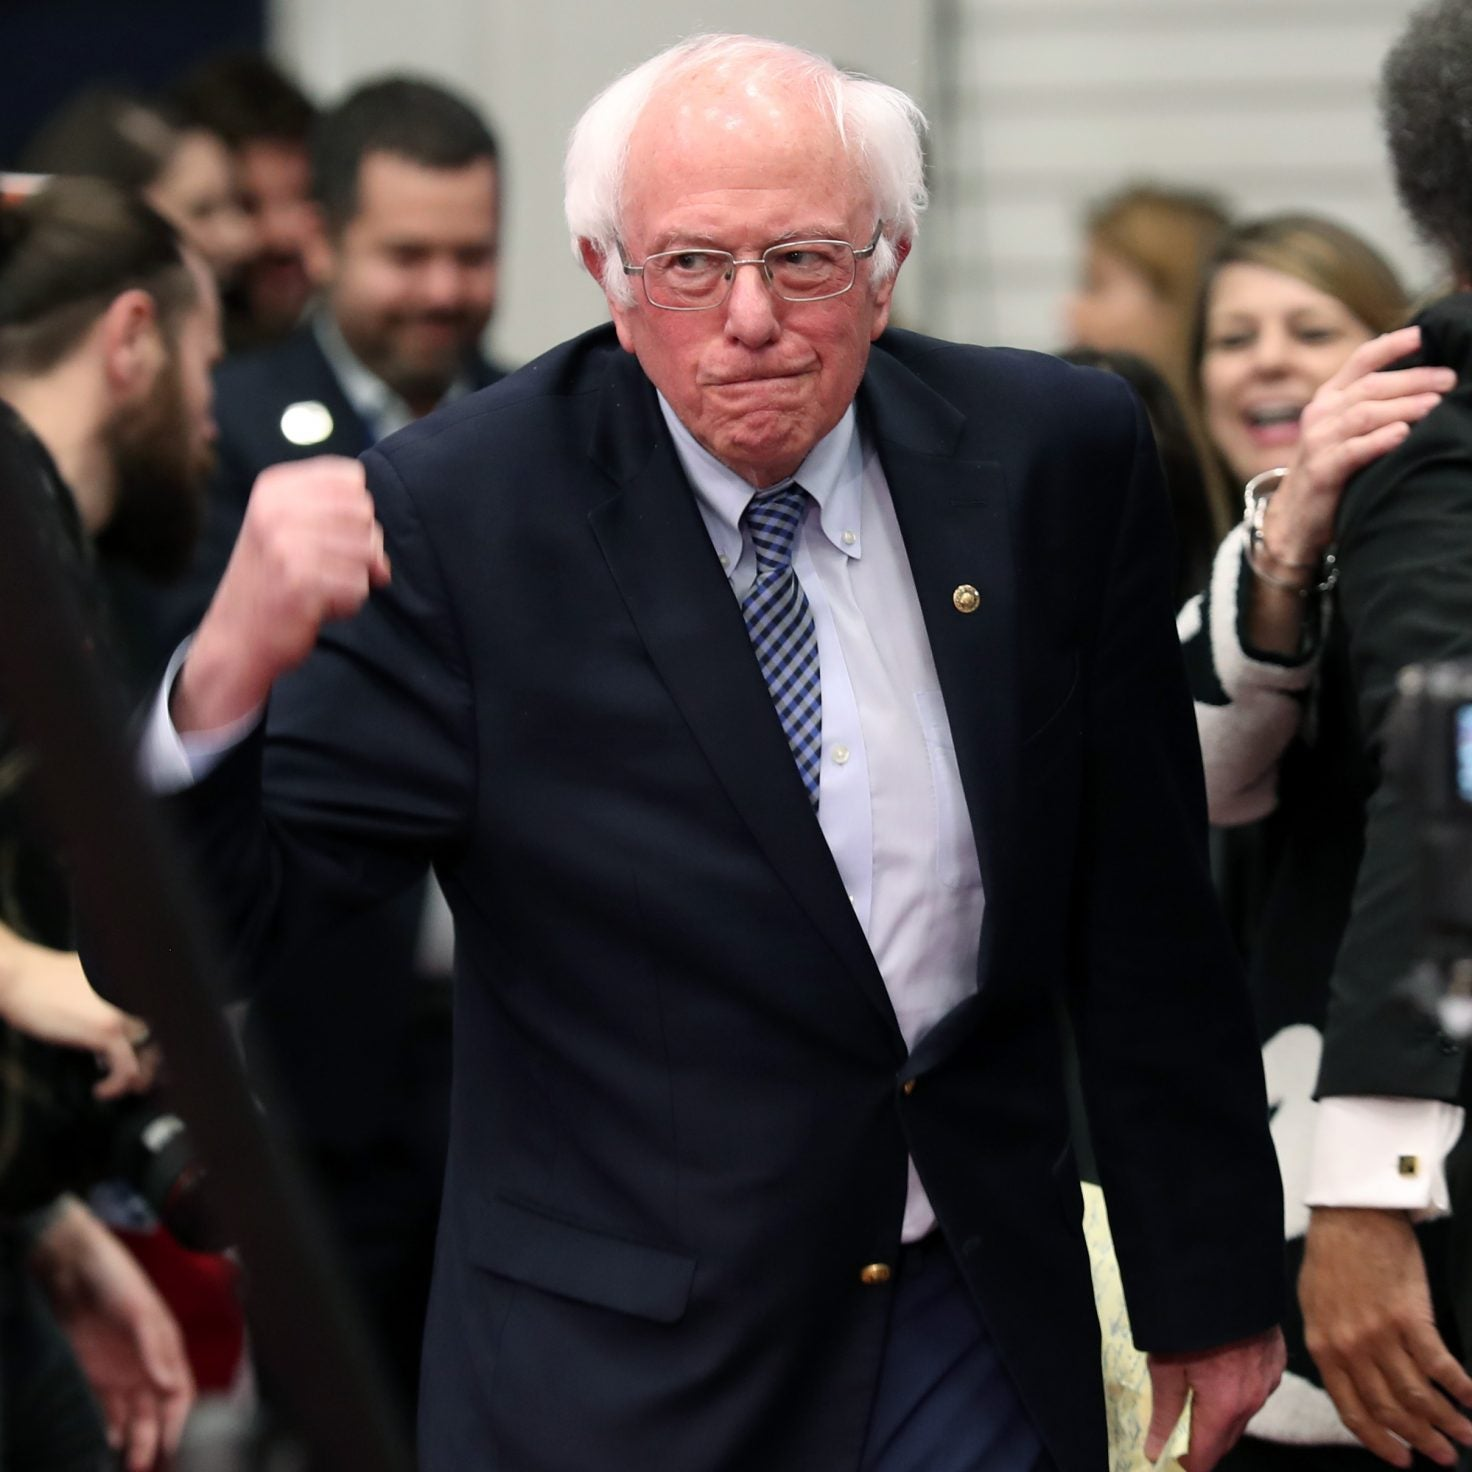 Bernie Sanders Secures Victory In New Hampshire